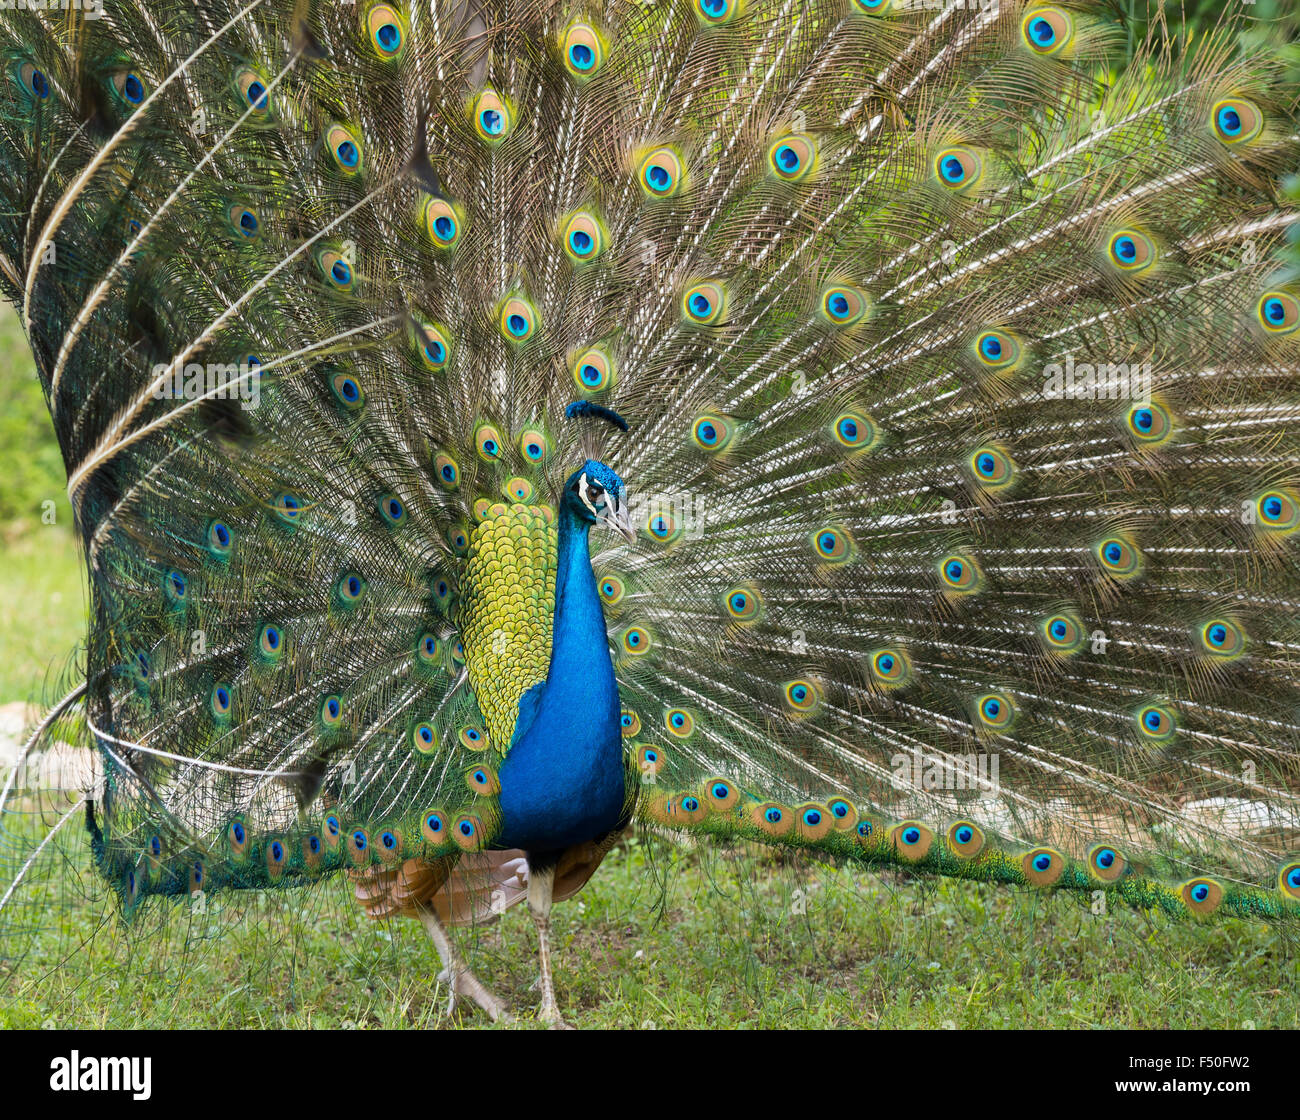 Peacocking: a male peafowl displays his plumage - Stock Image